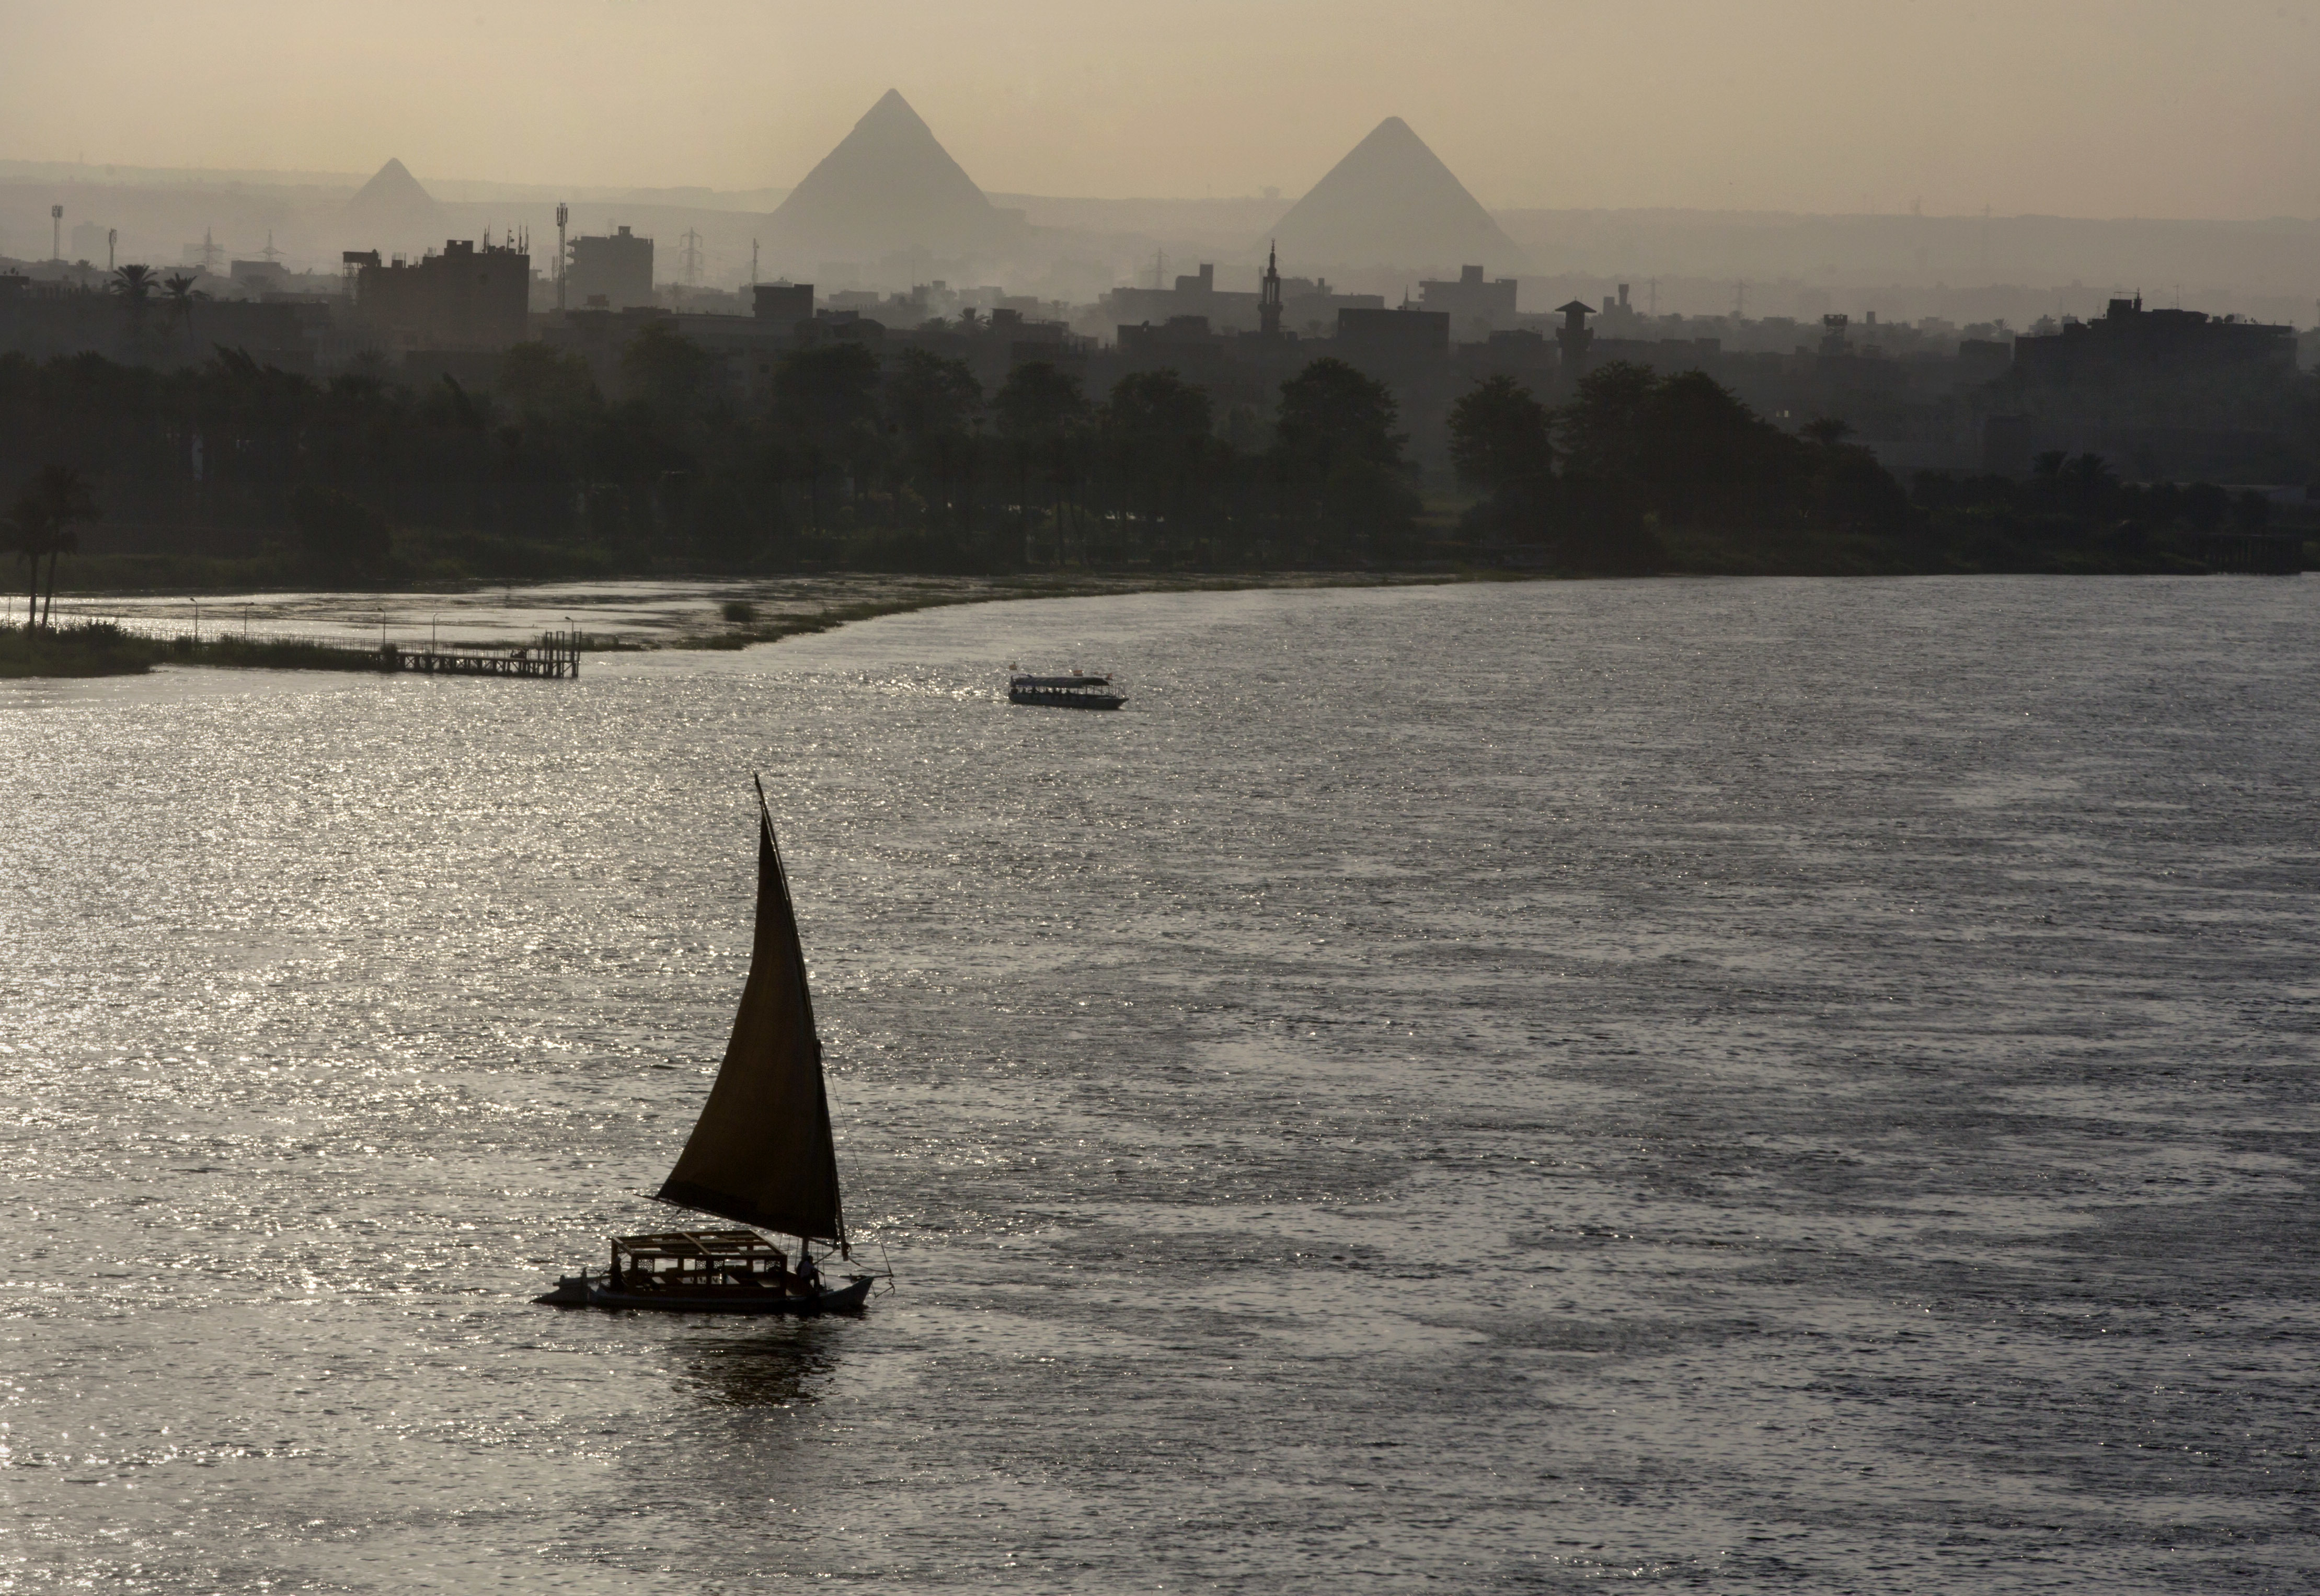 "<div class=""meta image-caption""><div class=""origin-logo origin-image ap""><span>AP</span></div><span class=""caption-text"">Holiday makers take a boat tour on the Nile River past the Great Pyramids, in Cairo, Egypt. (AP)</span></div>"